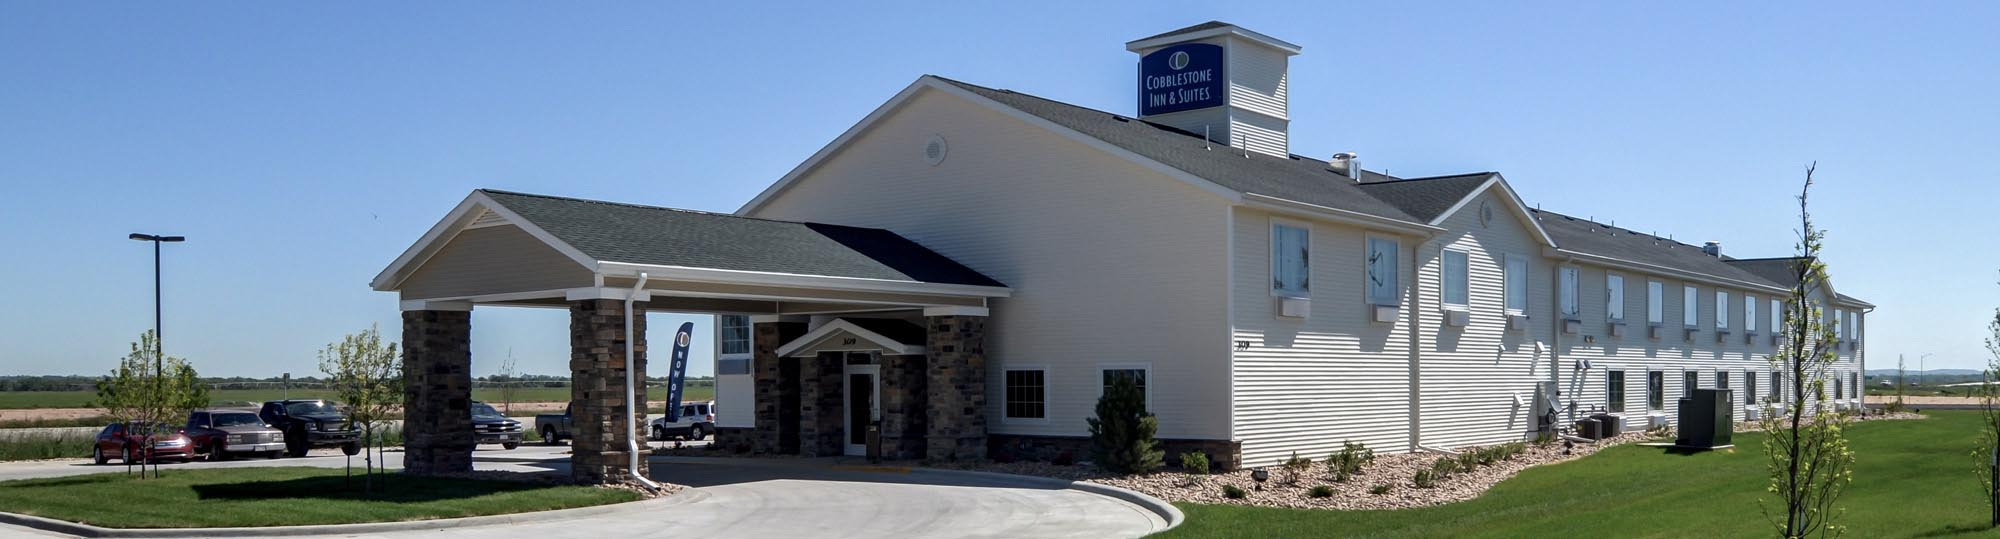 Cobblestone Inn and Suites Kersey